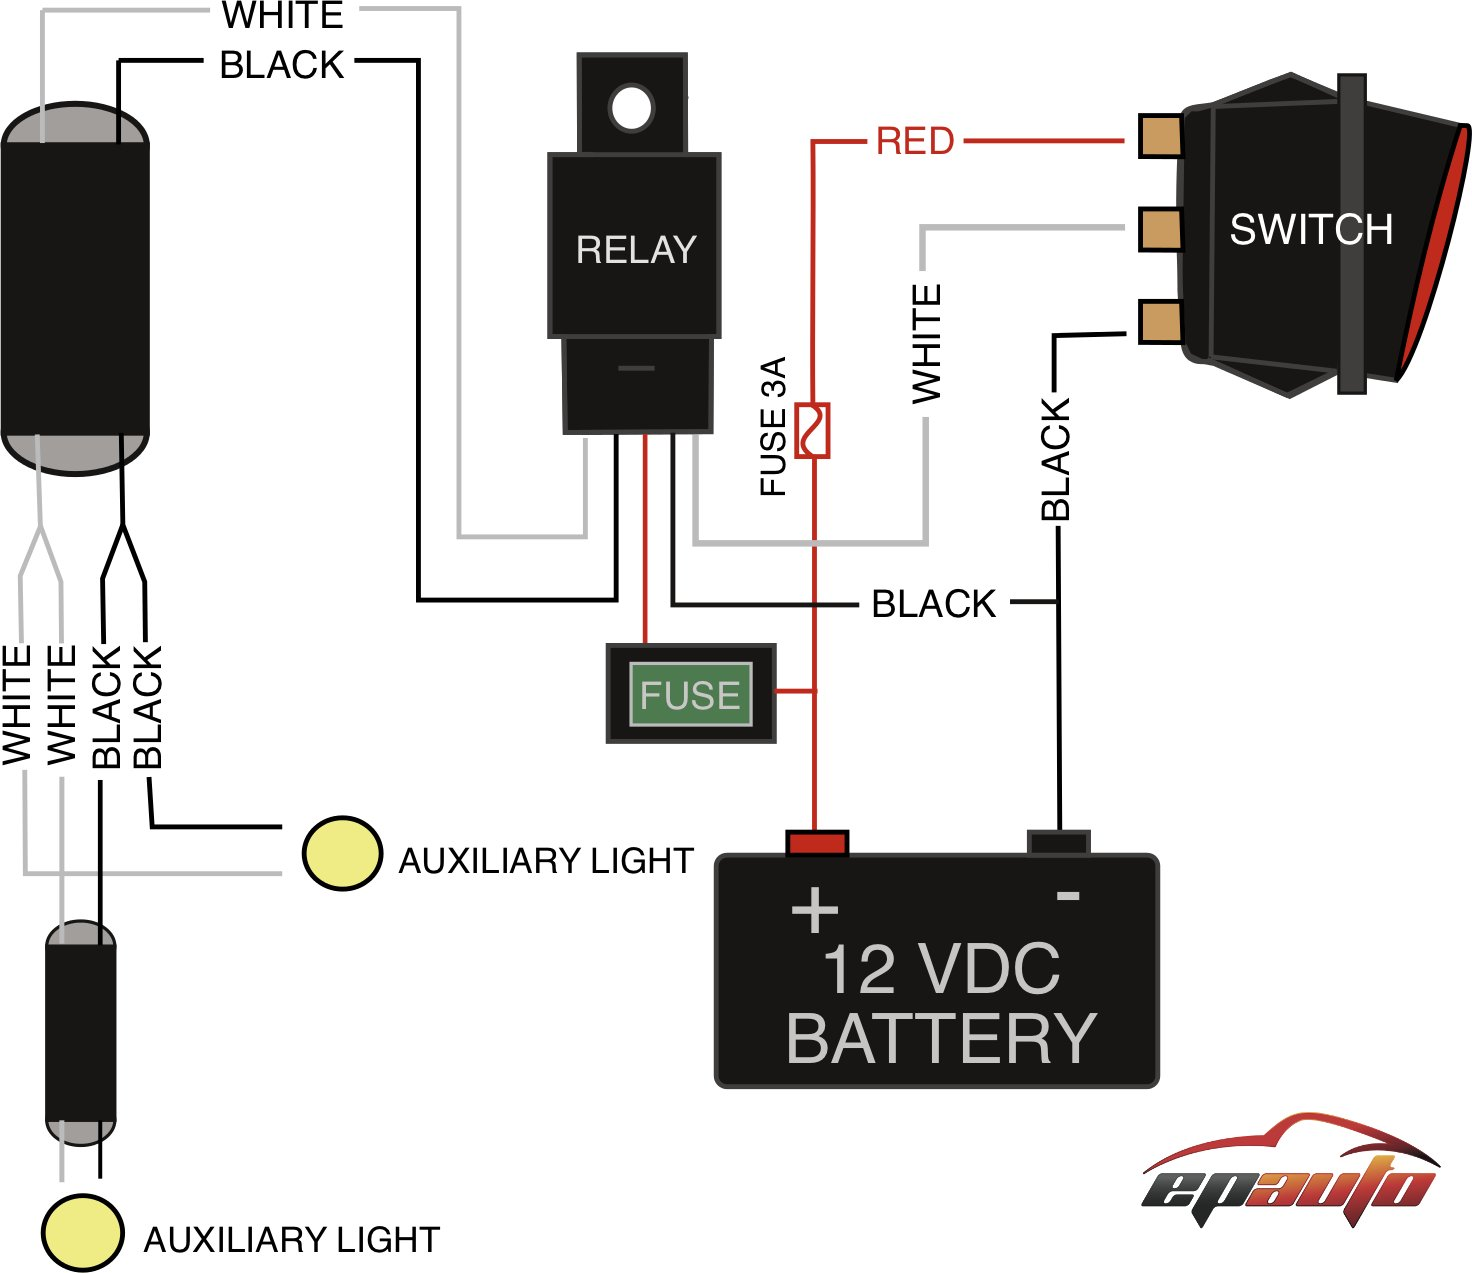 wiring a switch relay online schematic diagram u2022 rh holyoak co fuse relay diagram for 2010 t660 kenworth fuse and relay diagram 2005 ford focus